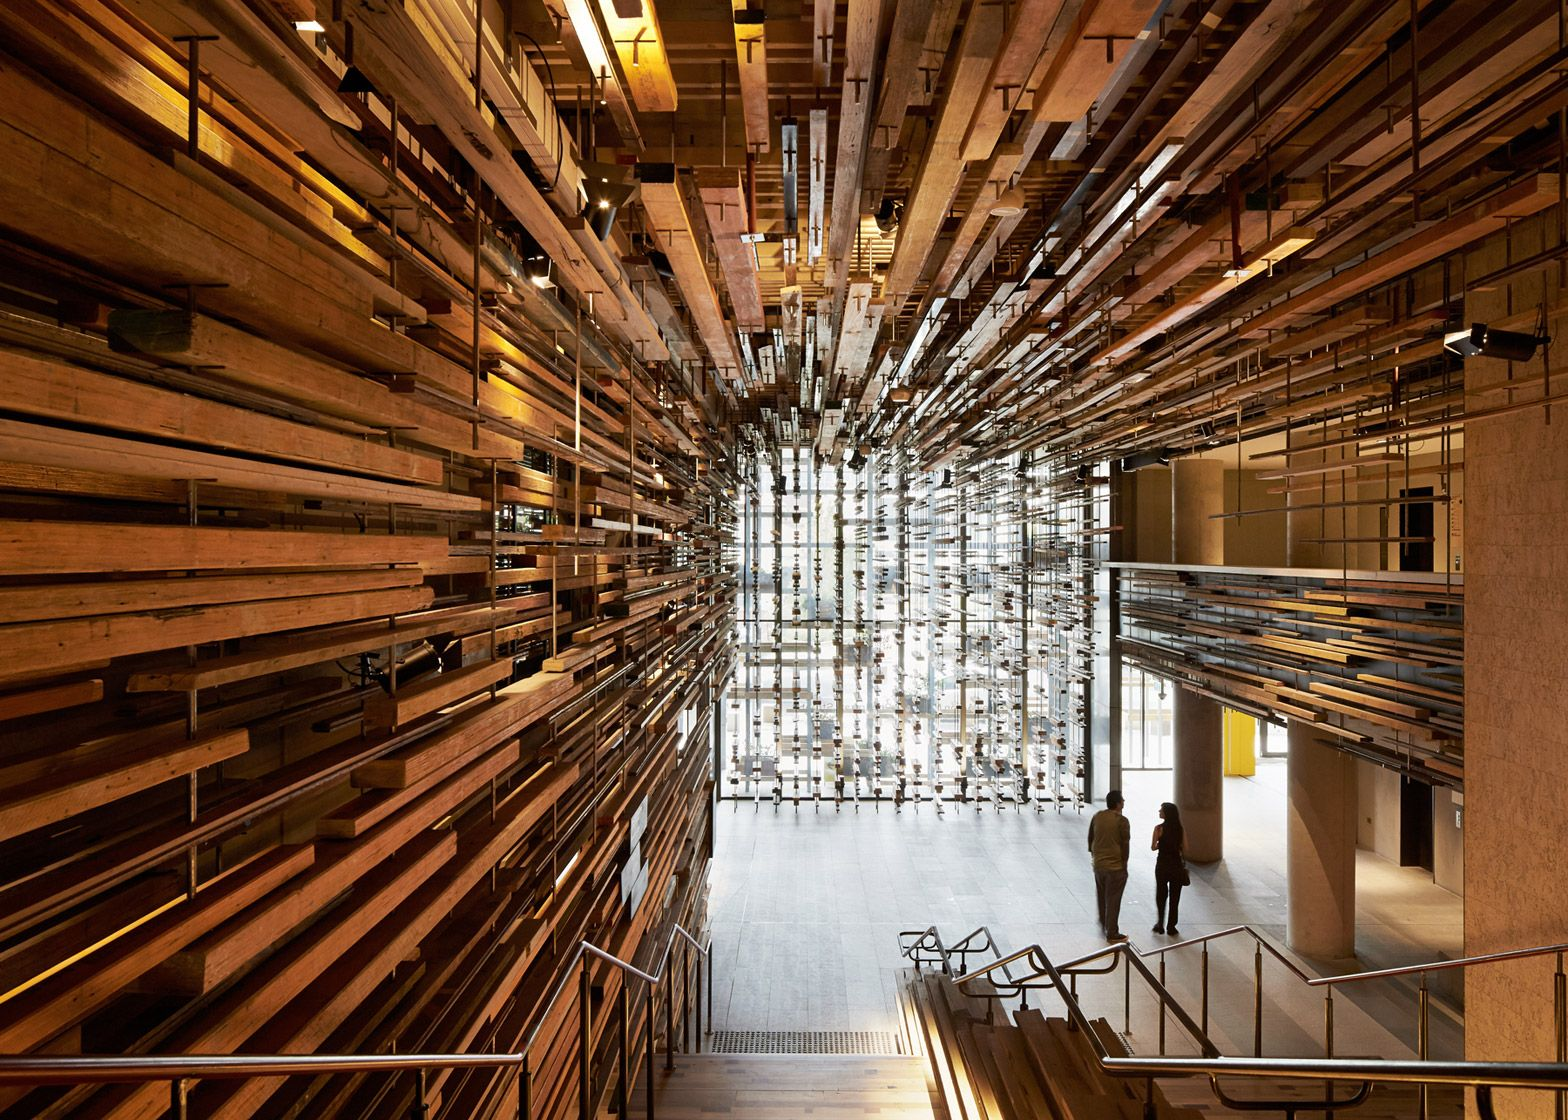 hotel hotel by march studio named as world interior of the year - Stone Slab Hotel 2015